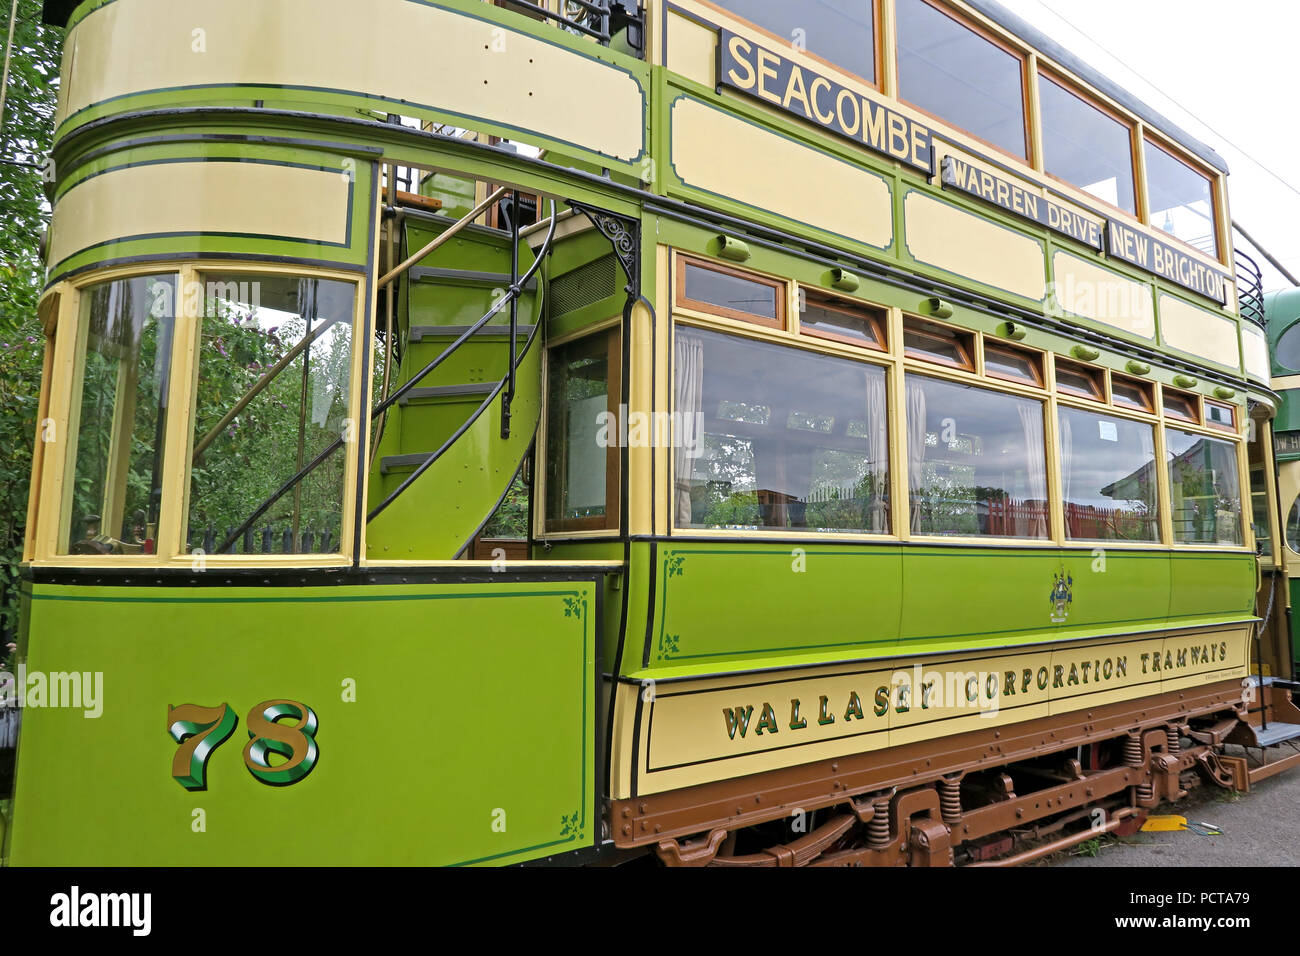 Wirral public Tram, Green Cream 78 Seacombe tram, Merseyside, North West England, UK - Stock Image